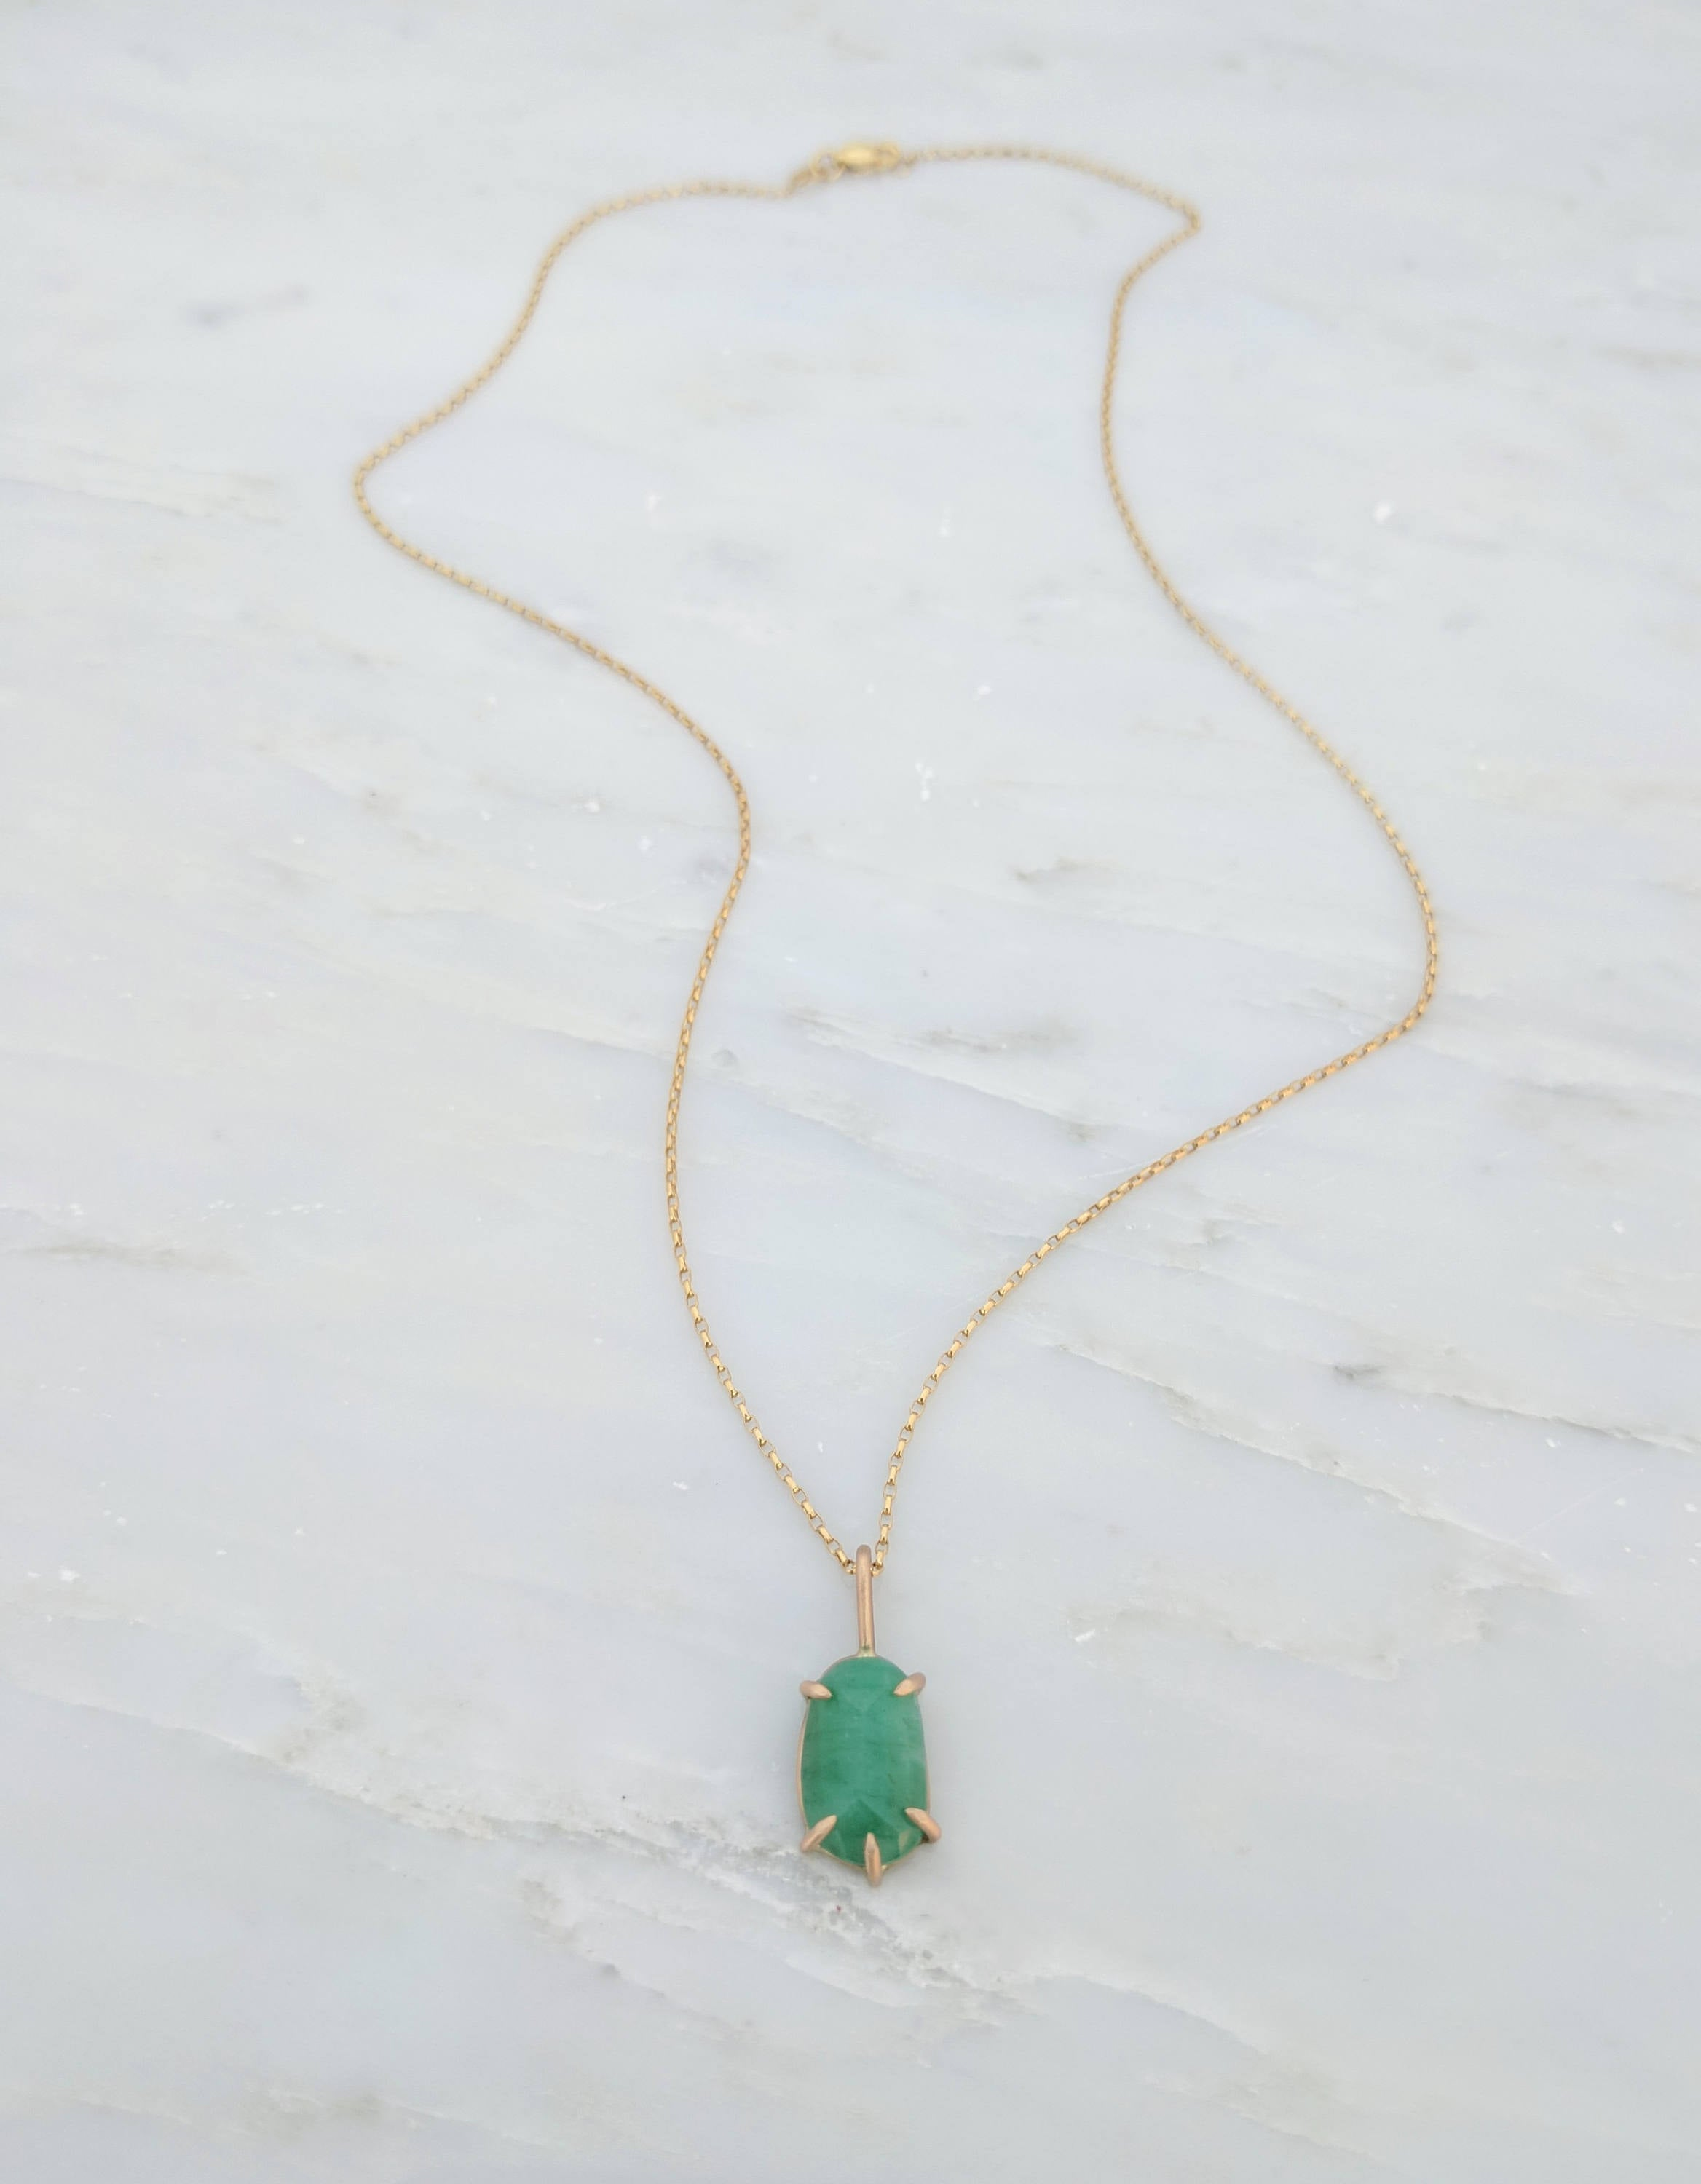 Rose Cut Natural Emerald Pendant Necklace